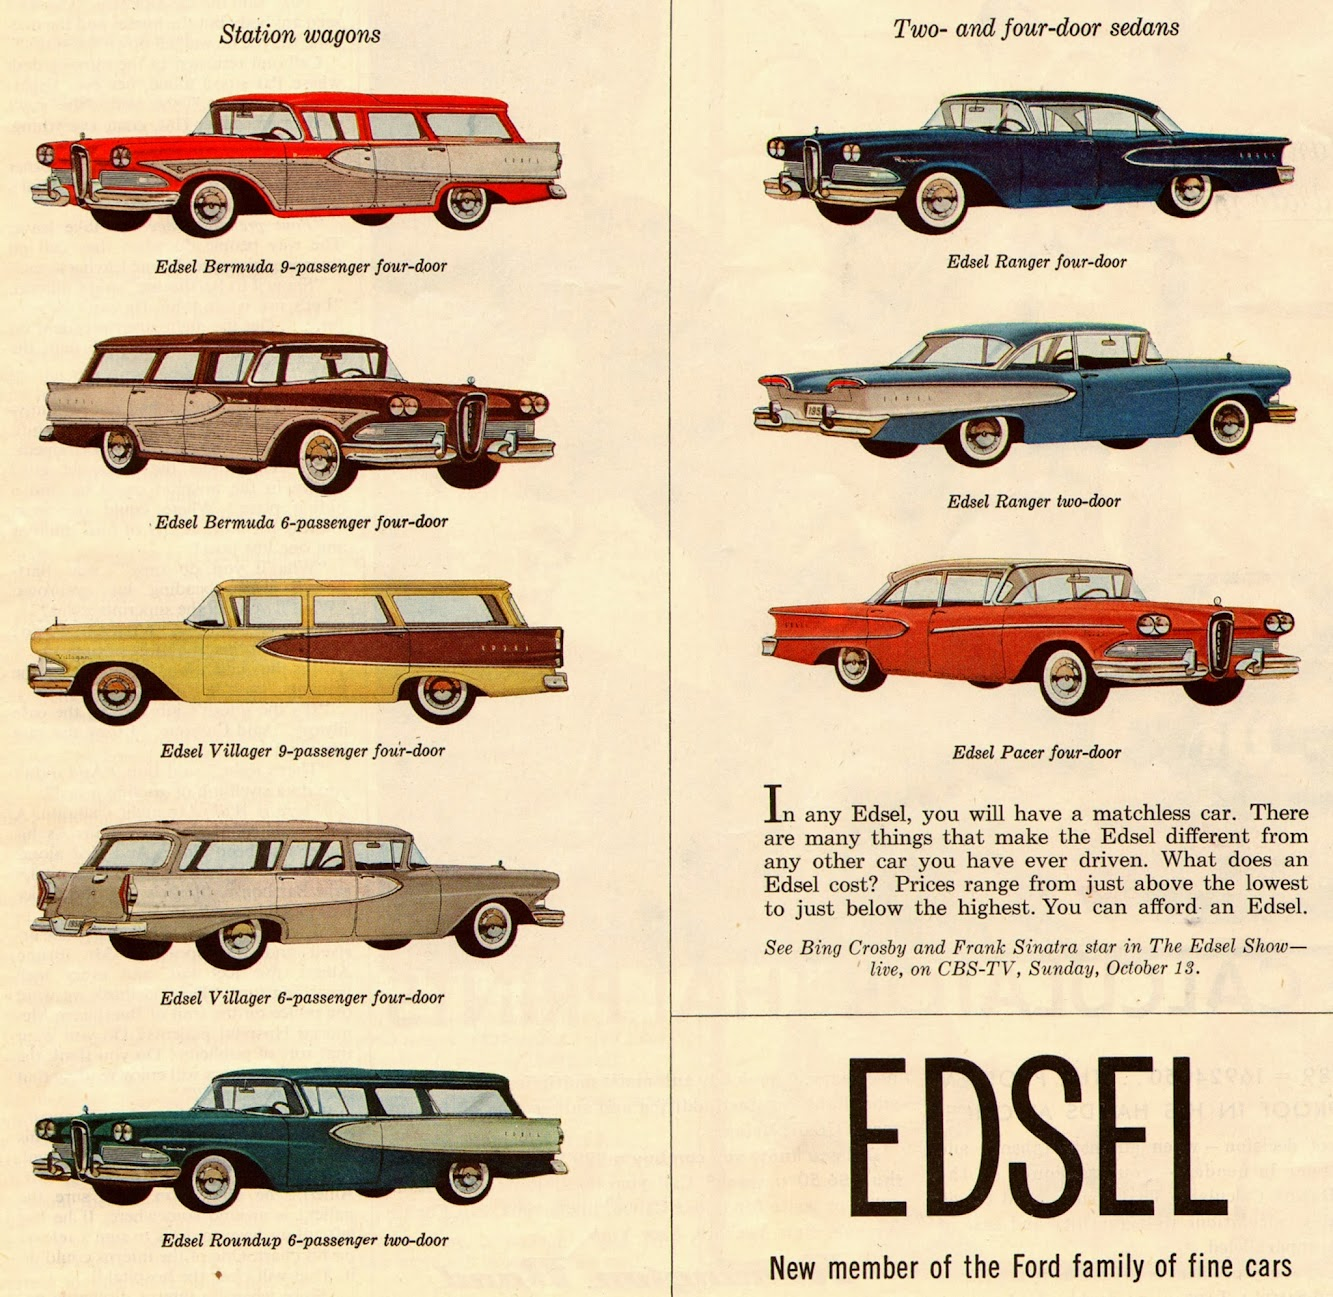 Edsel 1957 Car Models